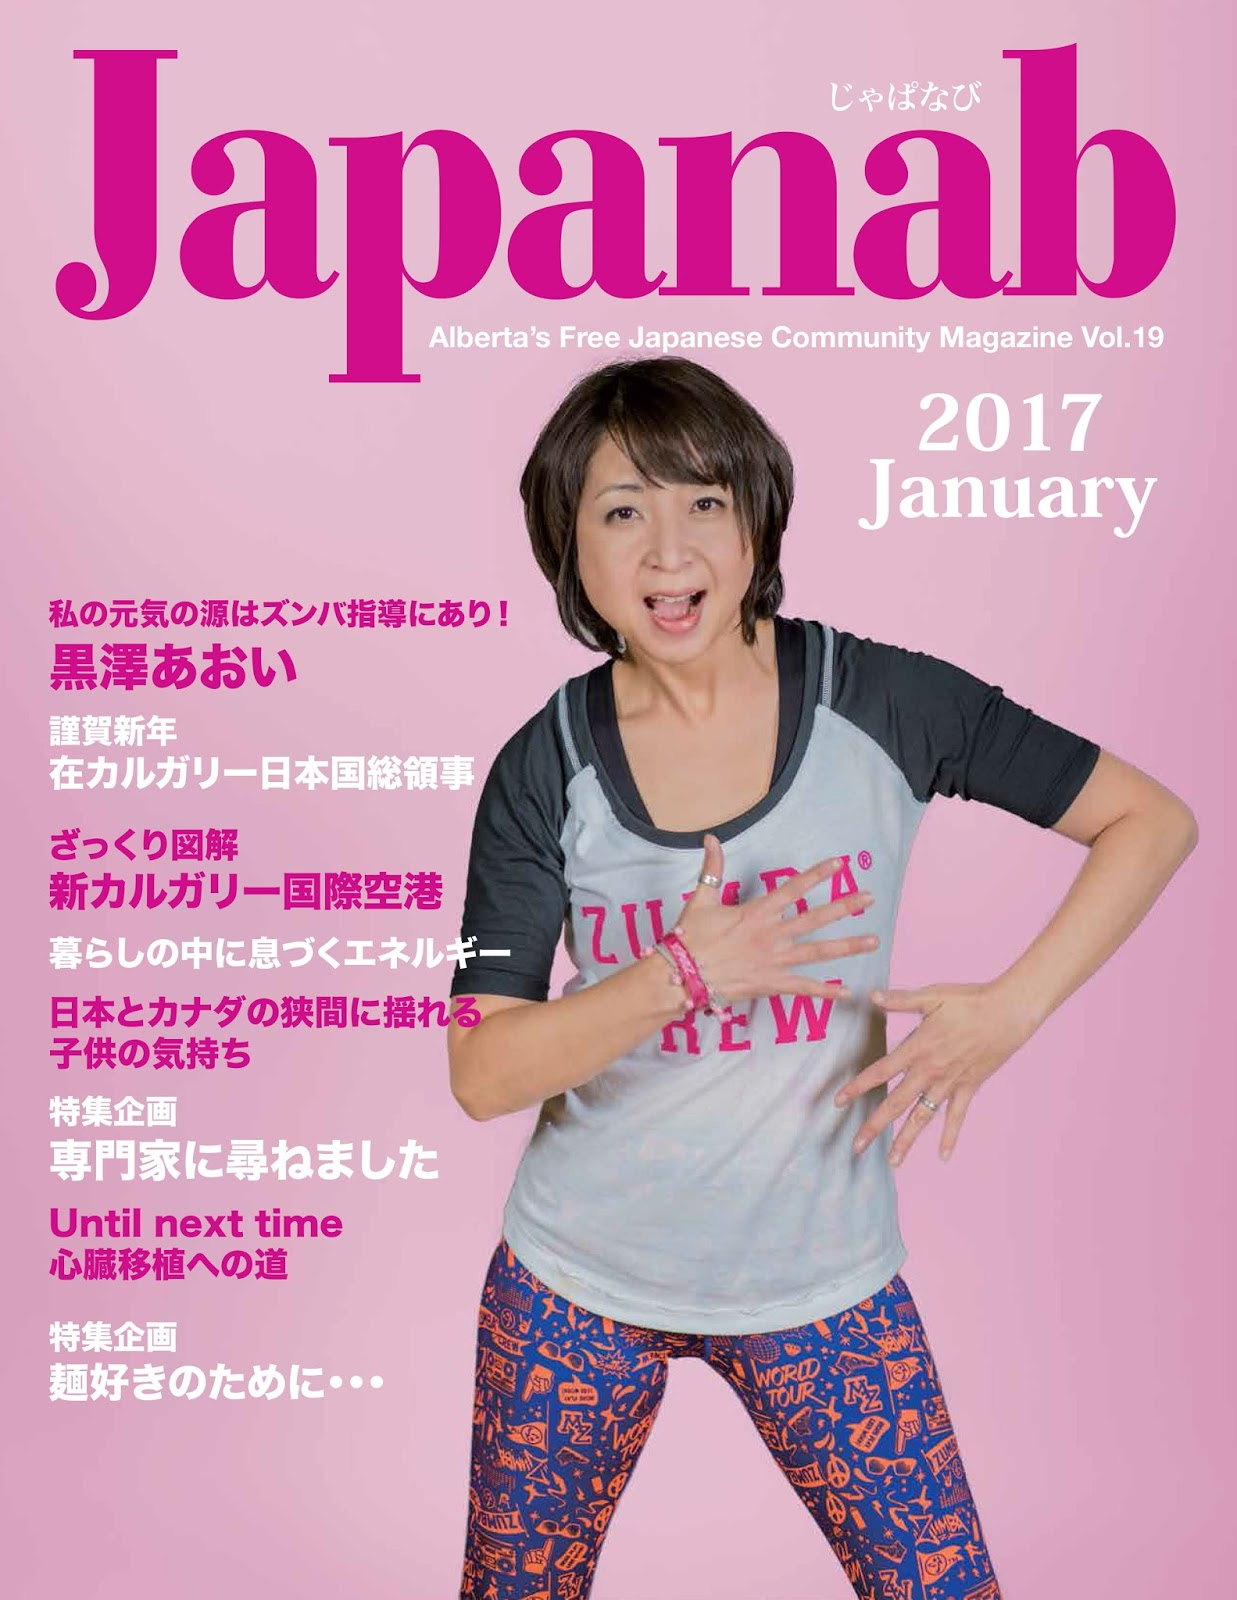 Japanab Vol. 19 - 2017 January